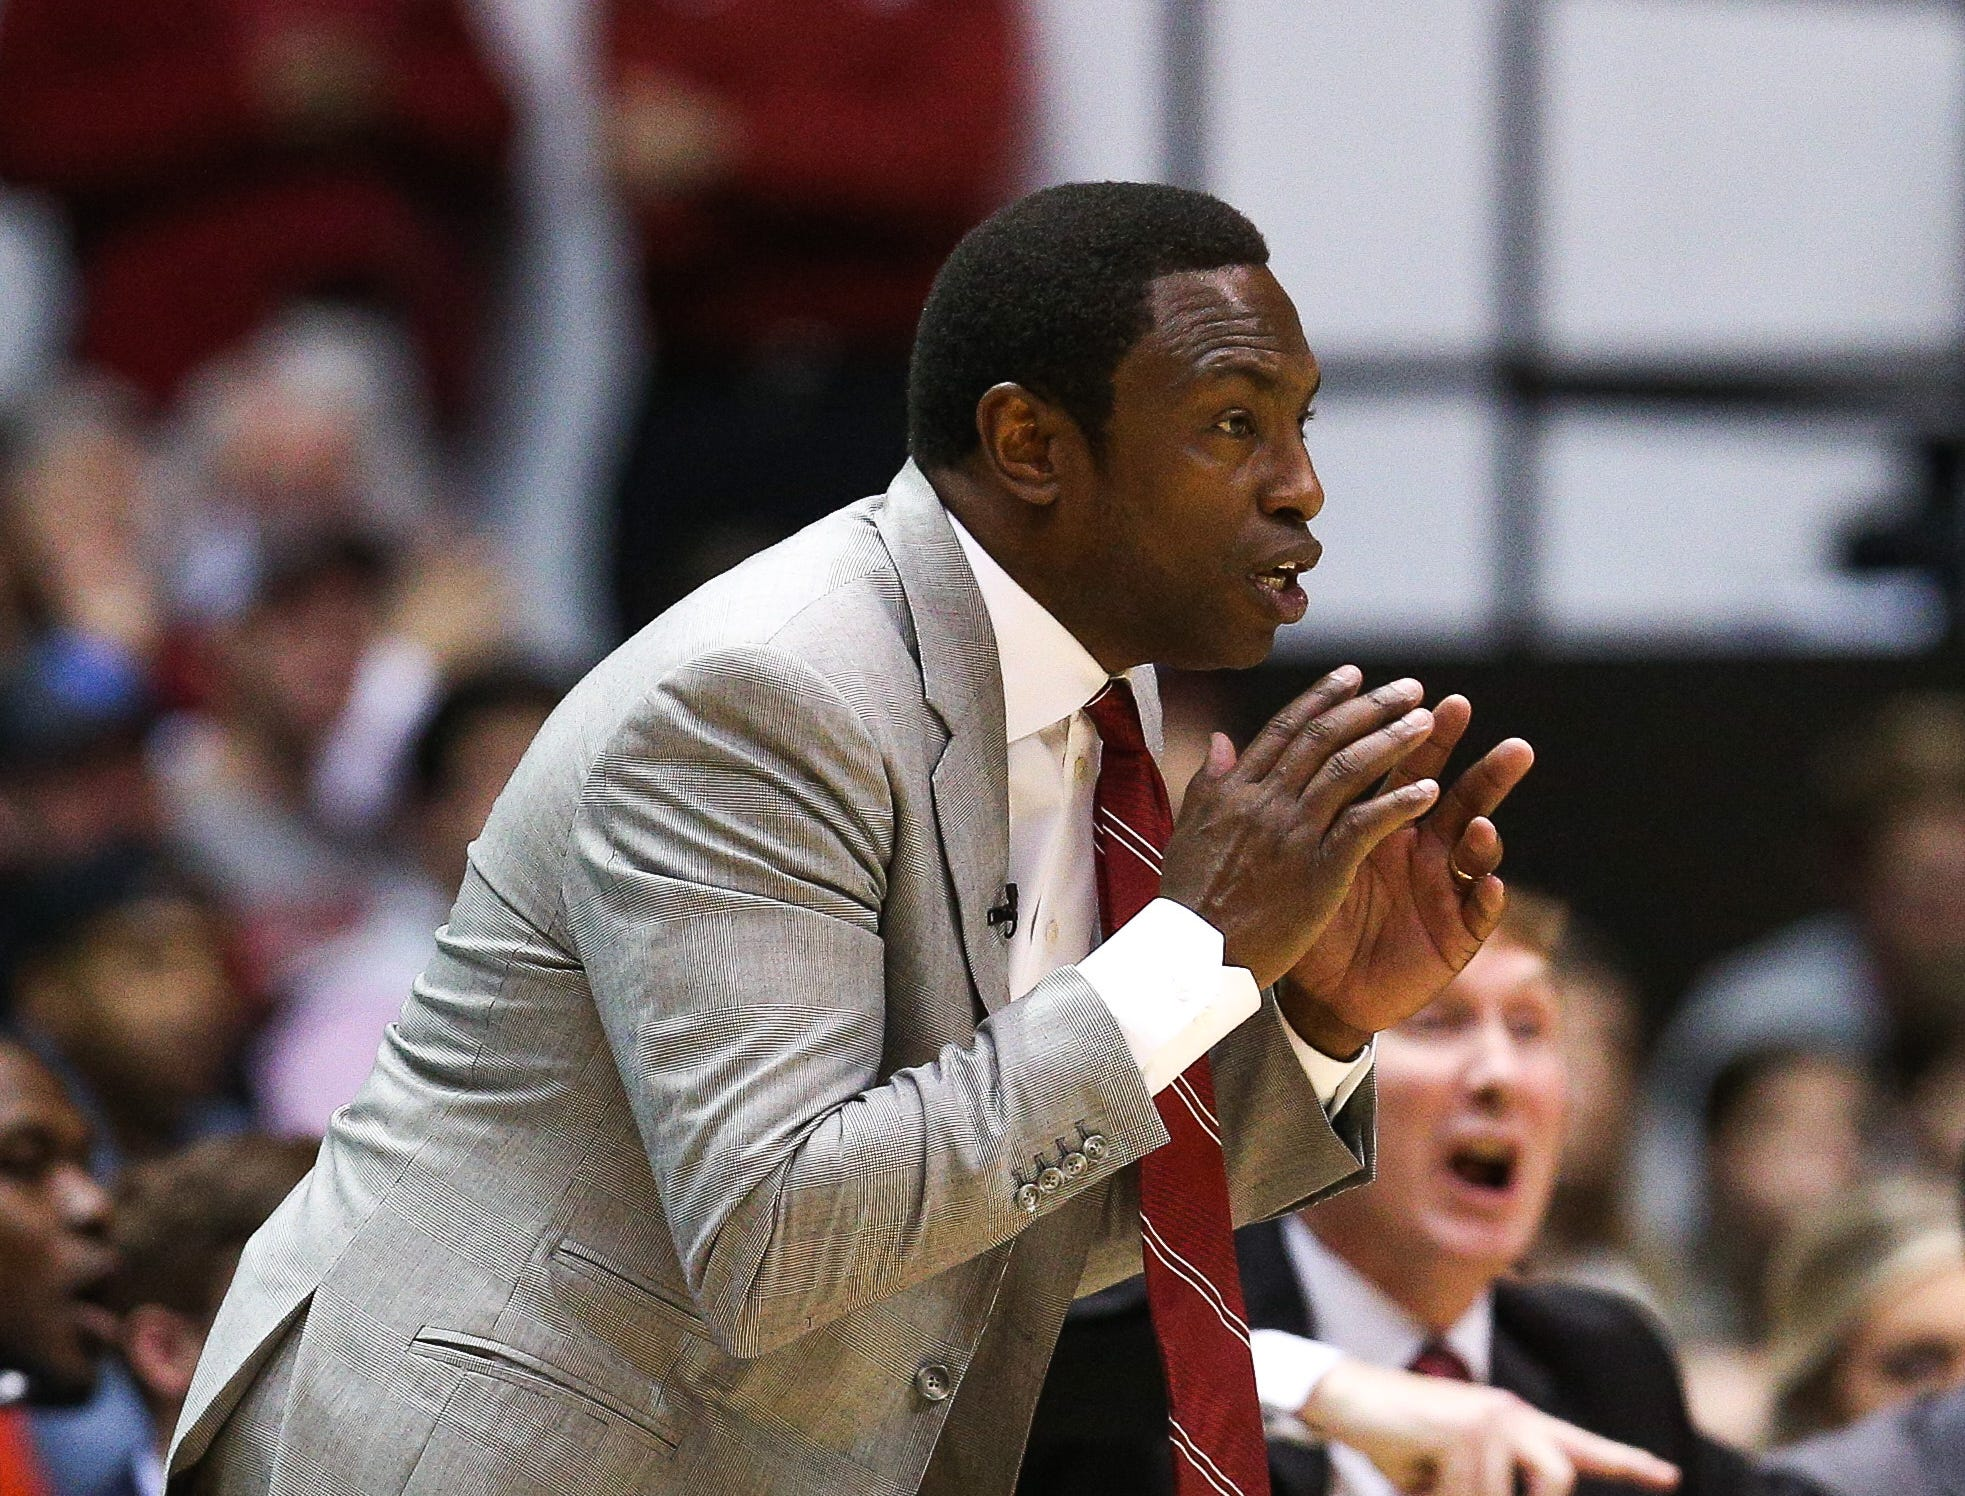 Jan 5, 2019; Tuscaloosa, AL, USA; Alabama Crimson Tide head coach Avery Johnson during the second half against Kentucky Wildcats at Coleman Coliseum. Mandatory Credit: Marvin Gentry-USA TODAY Sports